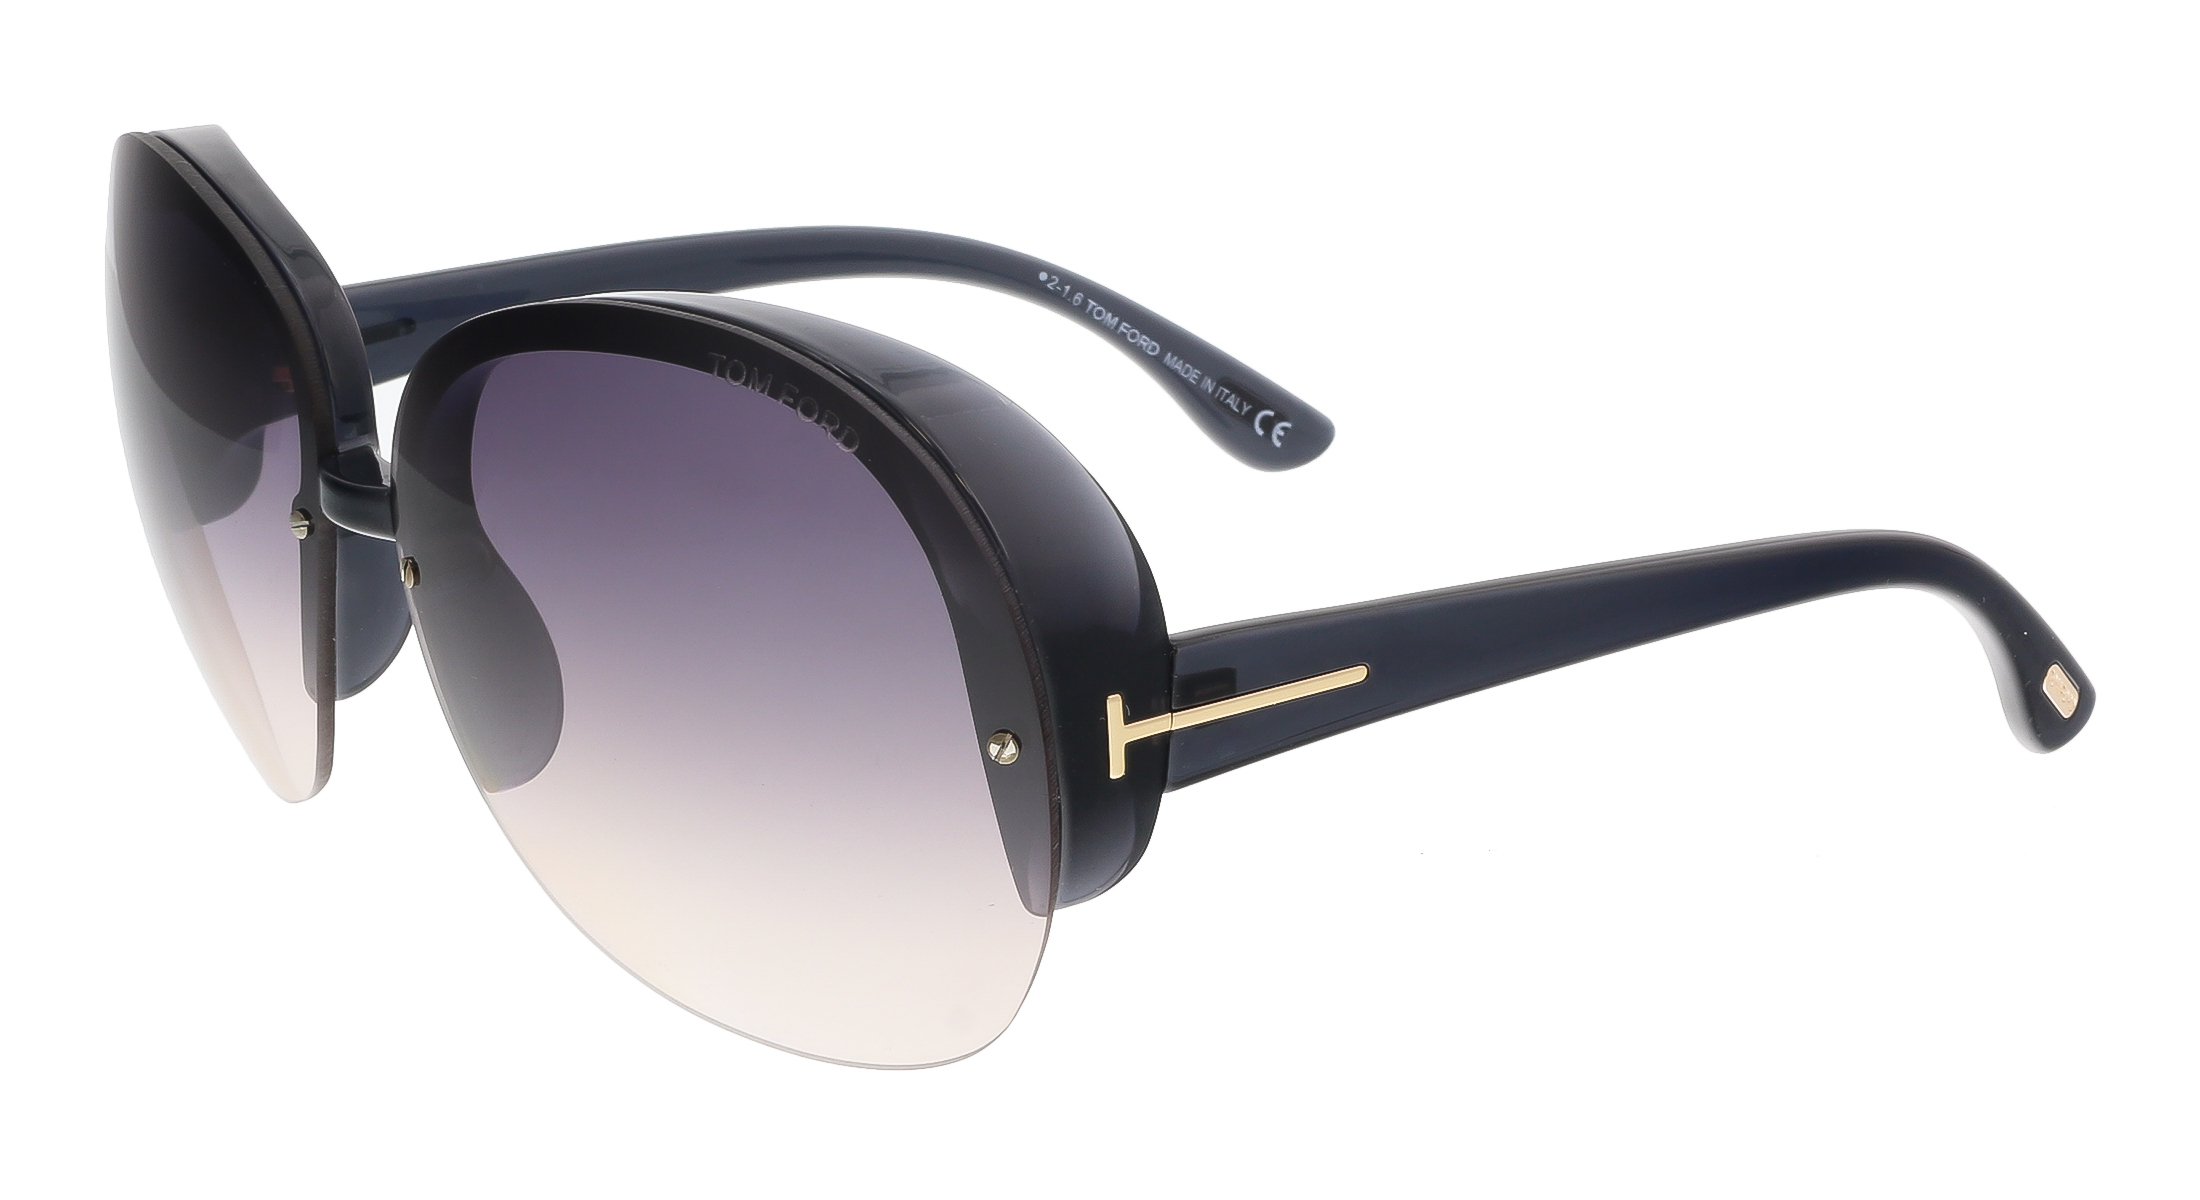 Tom Ford FT0458 20B MARINE Black Round Sunglasses